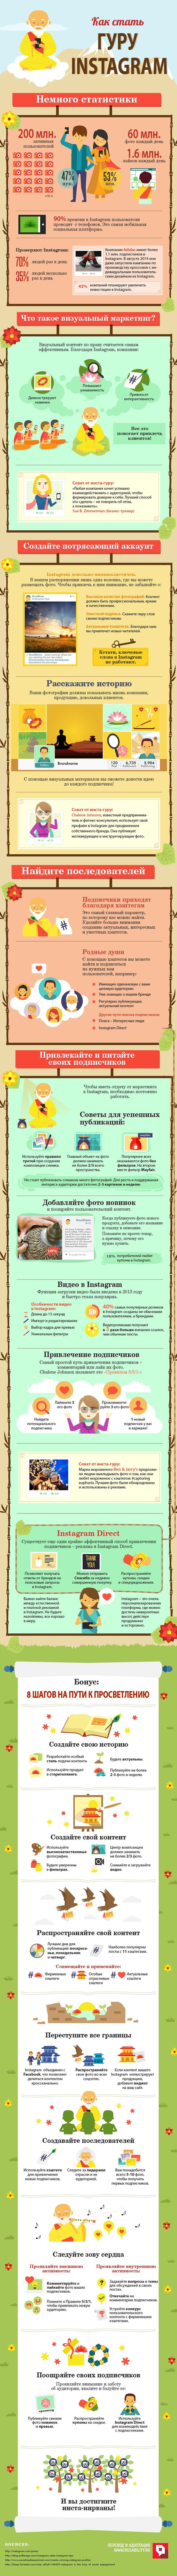 smm, instagram, соцсети, продвижение | Get professional SEO services at